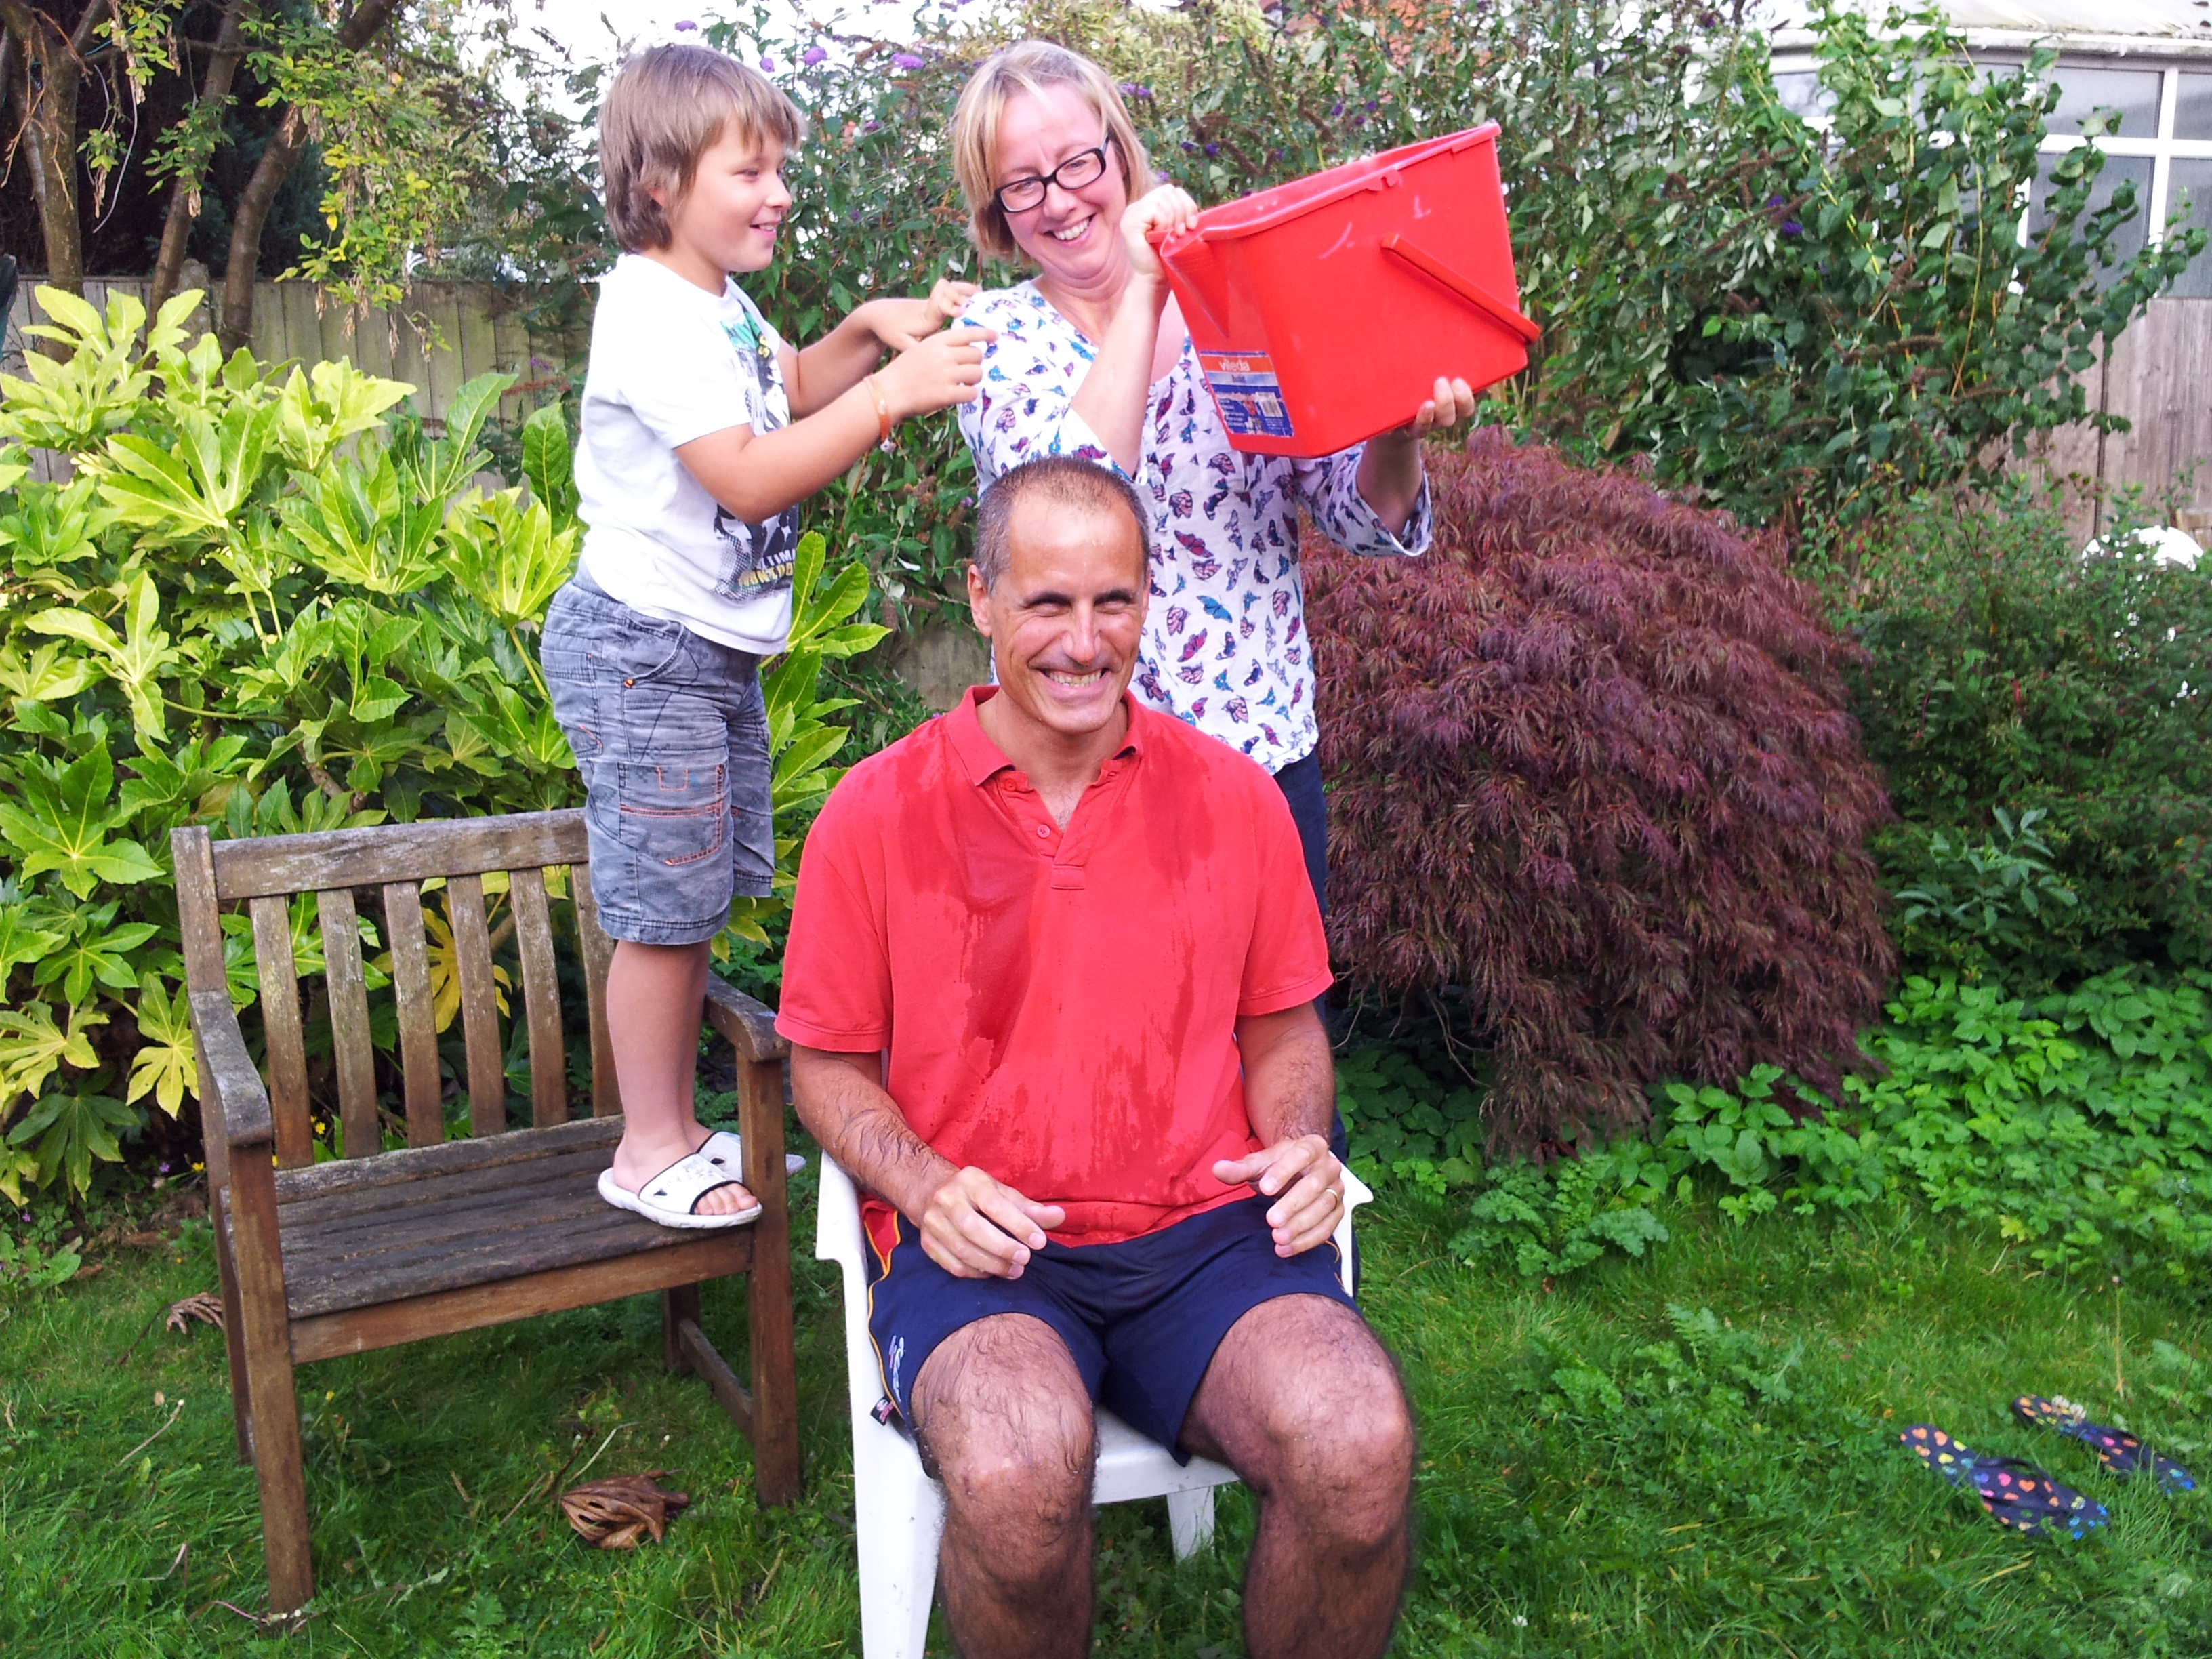 Sefton Central Labour MP Bill Esterson gets an icy soaking as he takes part in the Ice Bucket Challenge in aid of the Motor Neurone Disease Association.